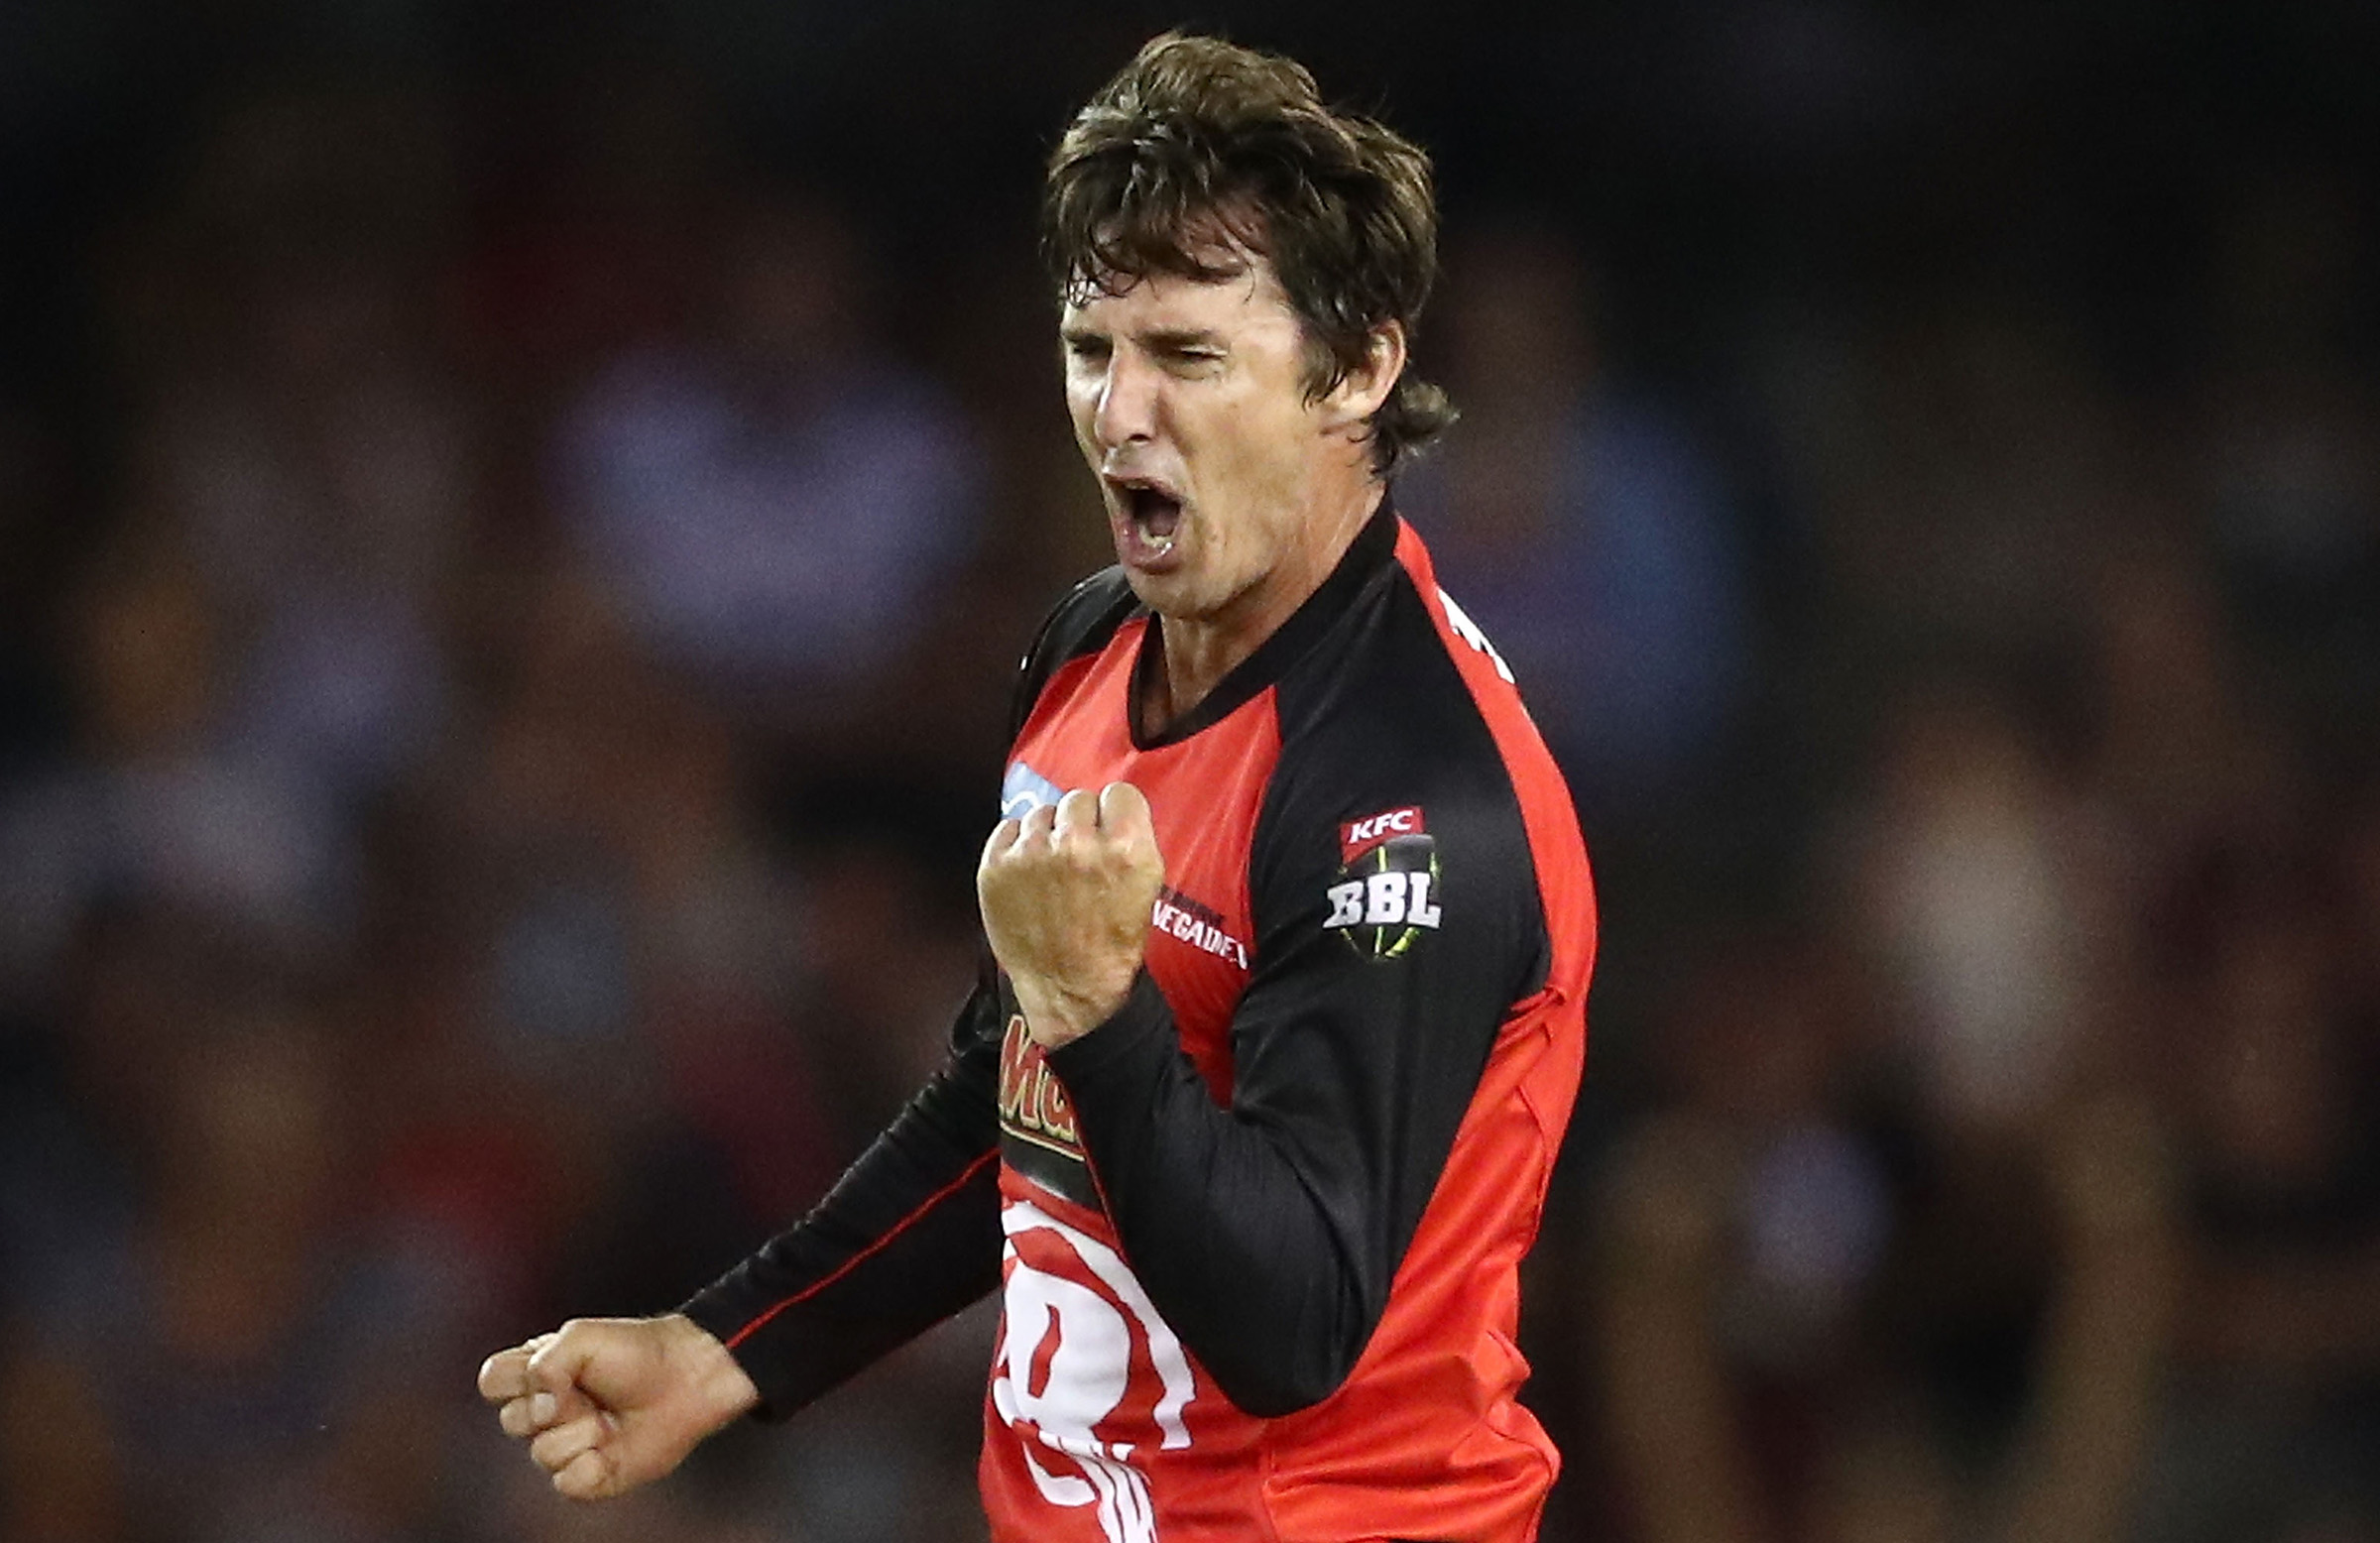 Bradd Hogg resigns for the Melbourne Renegades